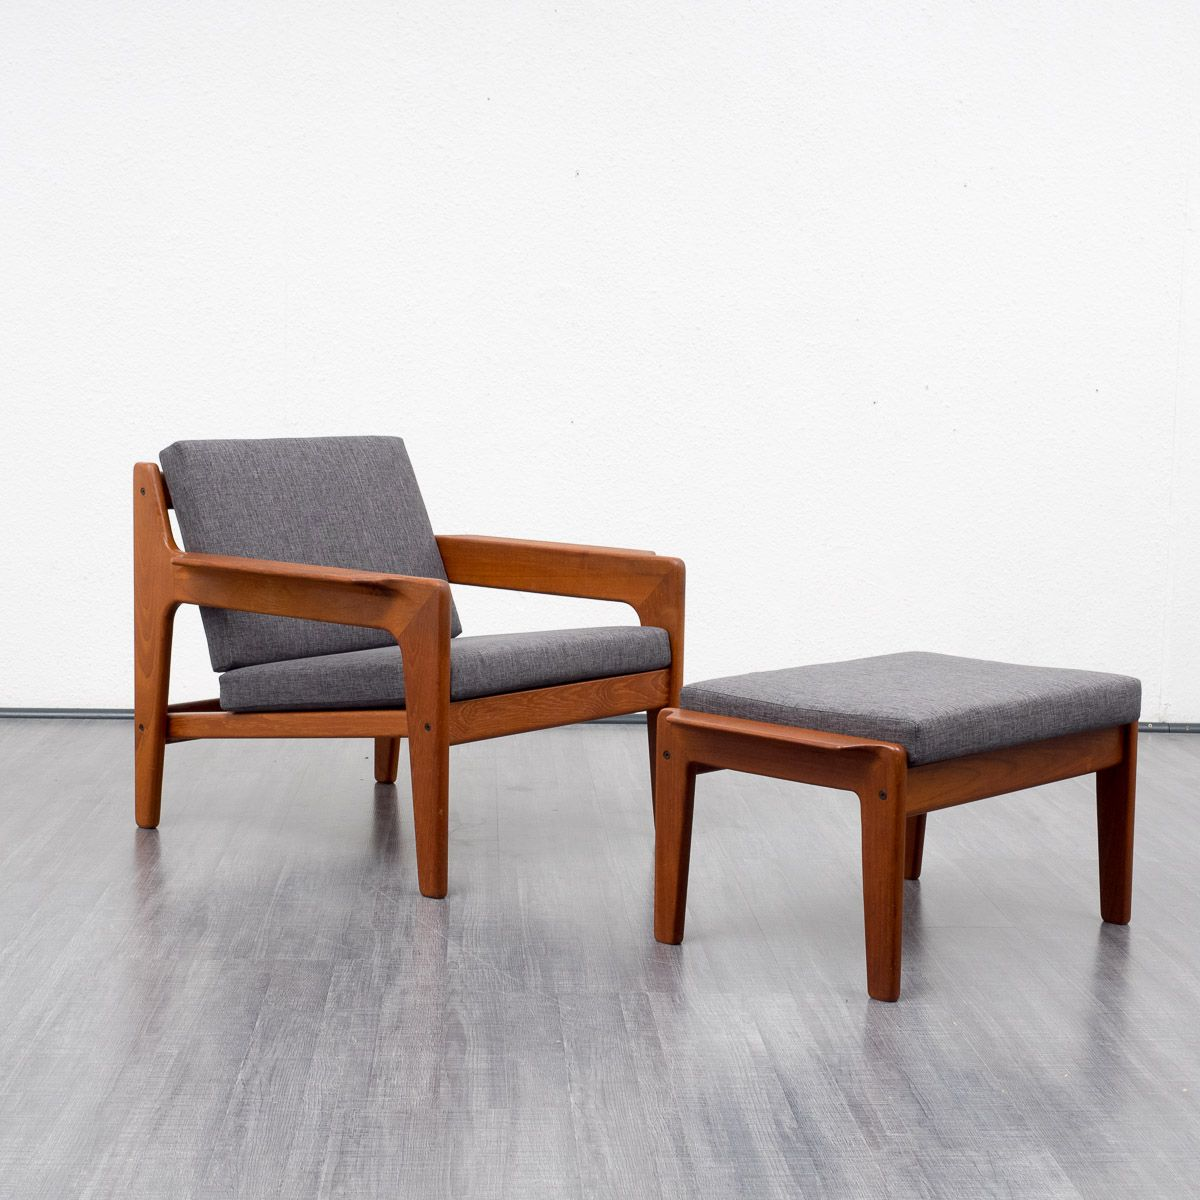 Teak Armchair With Foot Stool By Arne Wahl Iversen For